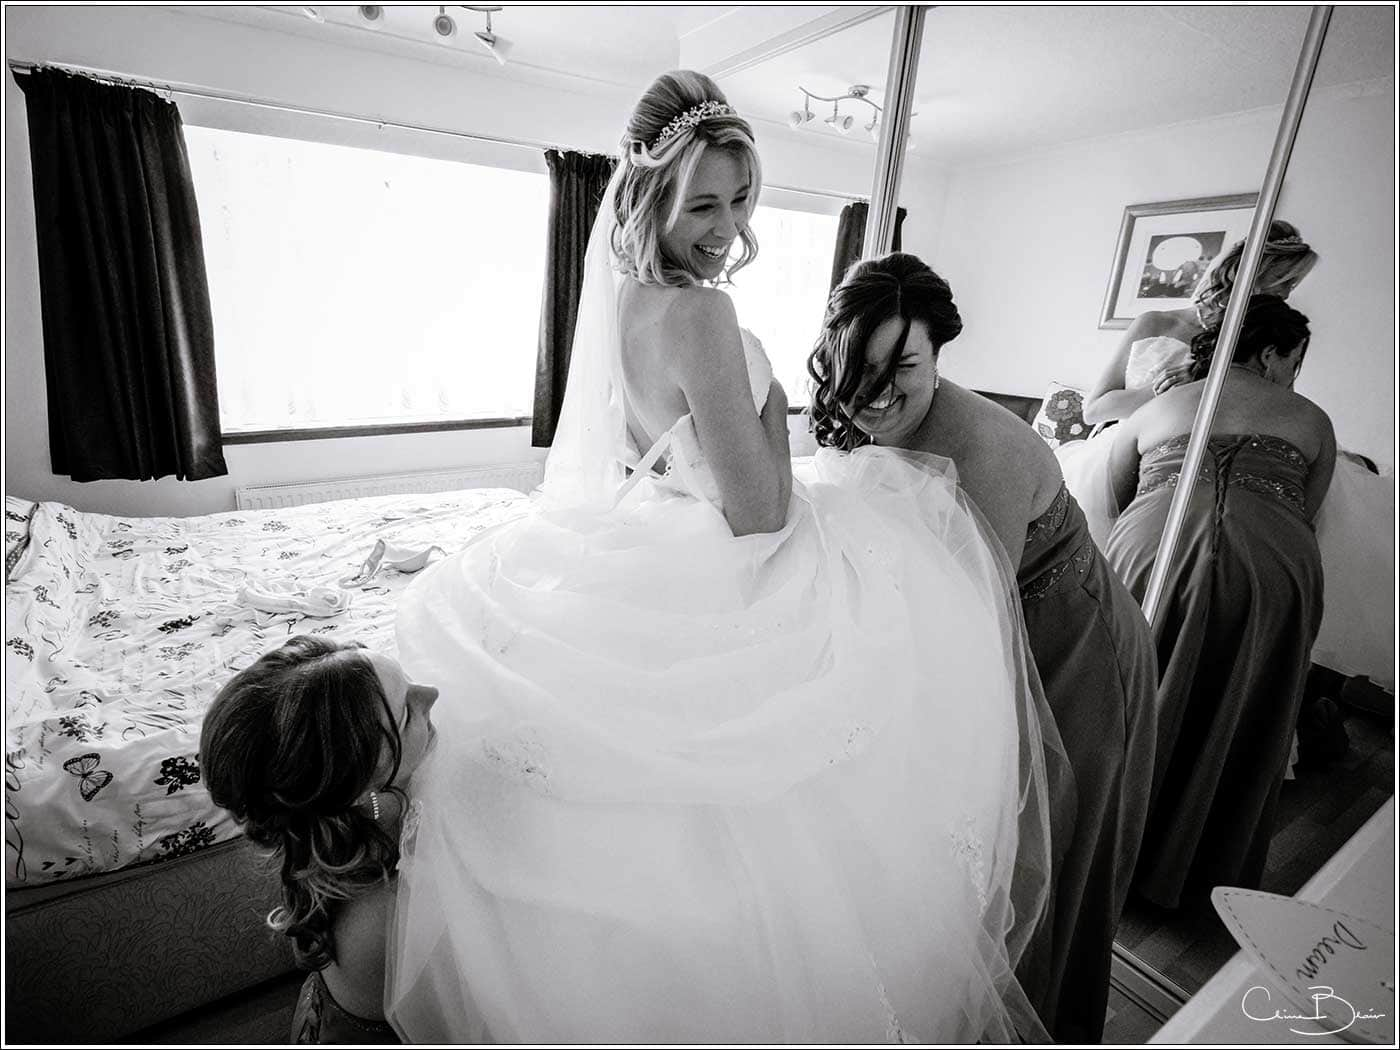 Bride being helped into dress by maids-by Hampton manor wedding photographer Clive Blair Photography